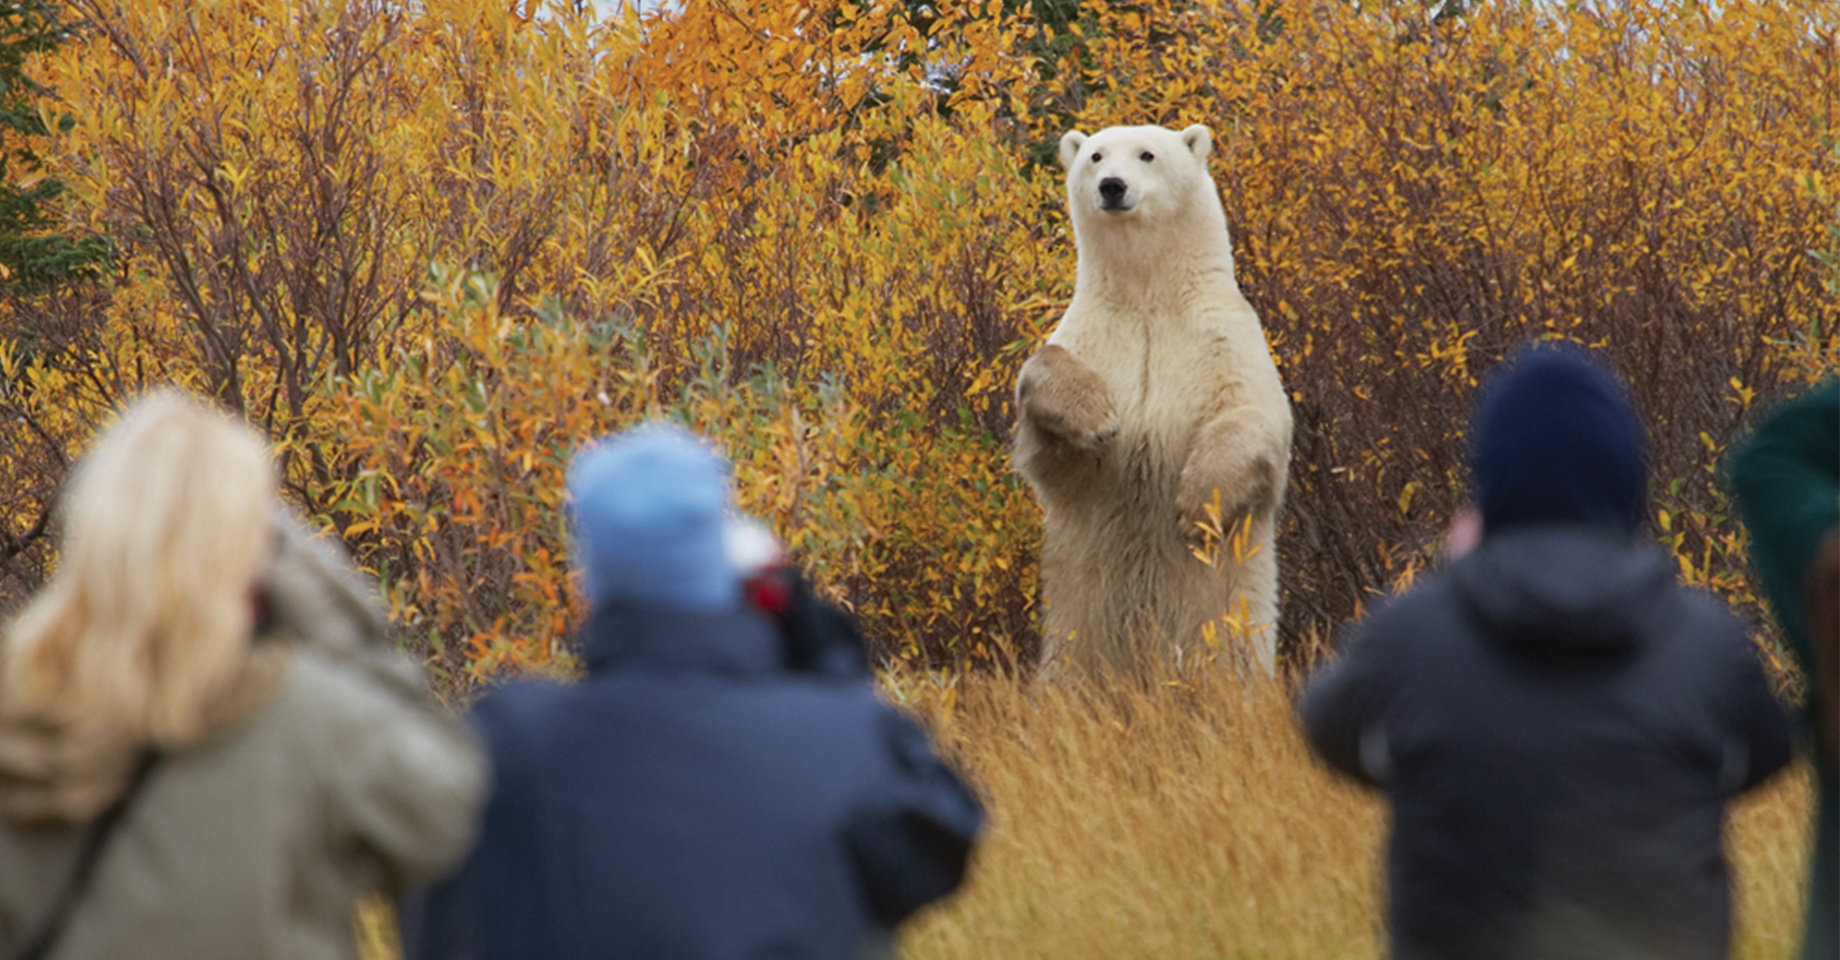 People rugged-up in winter clothes, standing and taking photographs of a polar bear standing on its rear legs, among some autumn trees